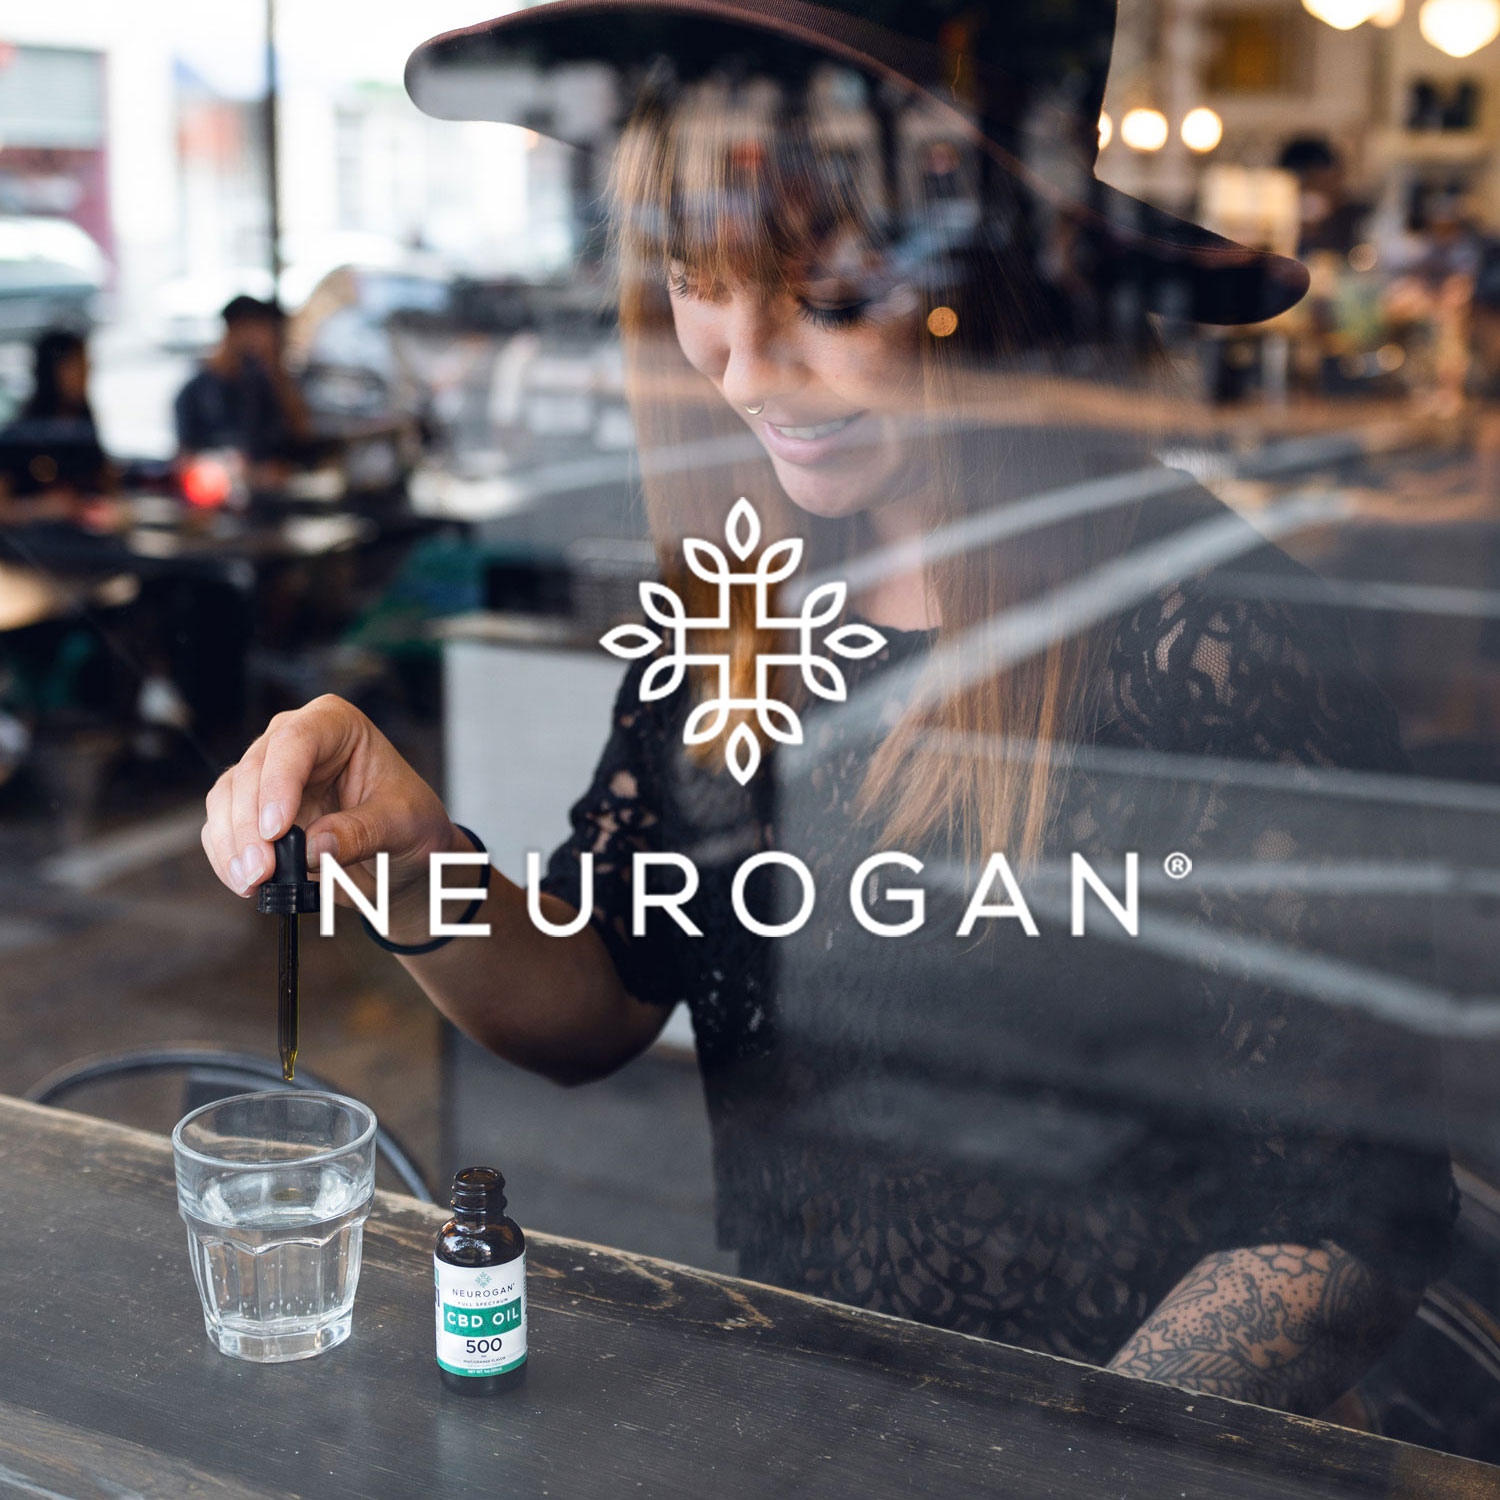 Neurogan Mood Fotografie Produktfotografie CBD Influencermarketing